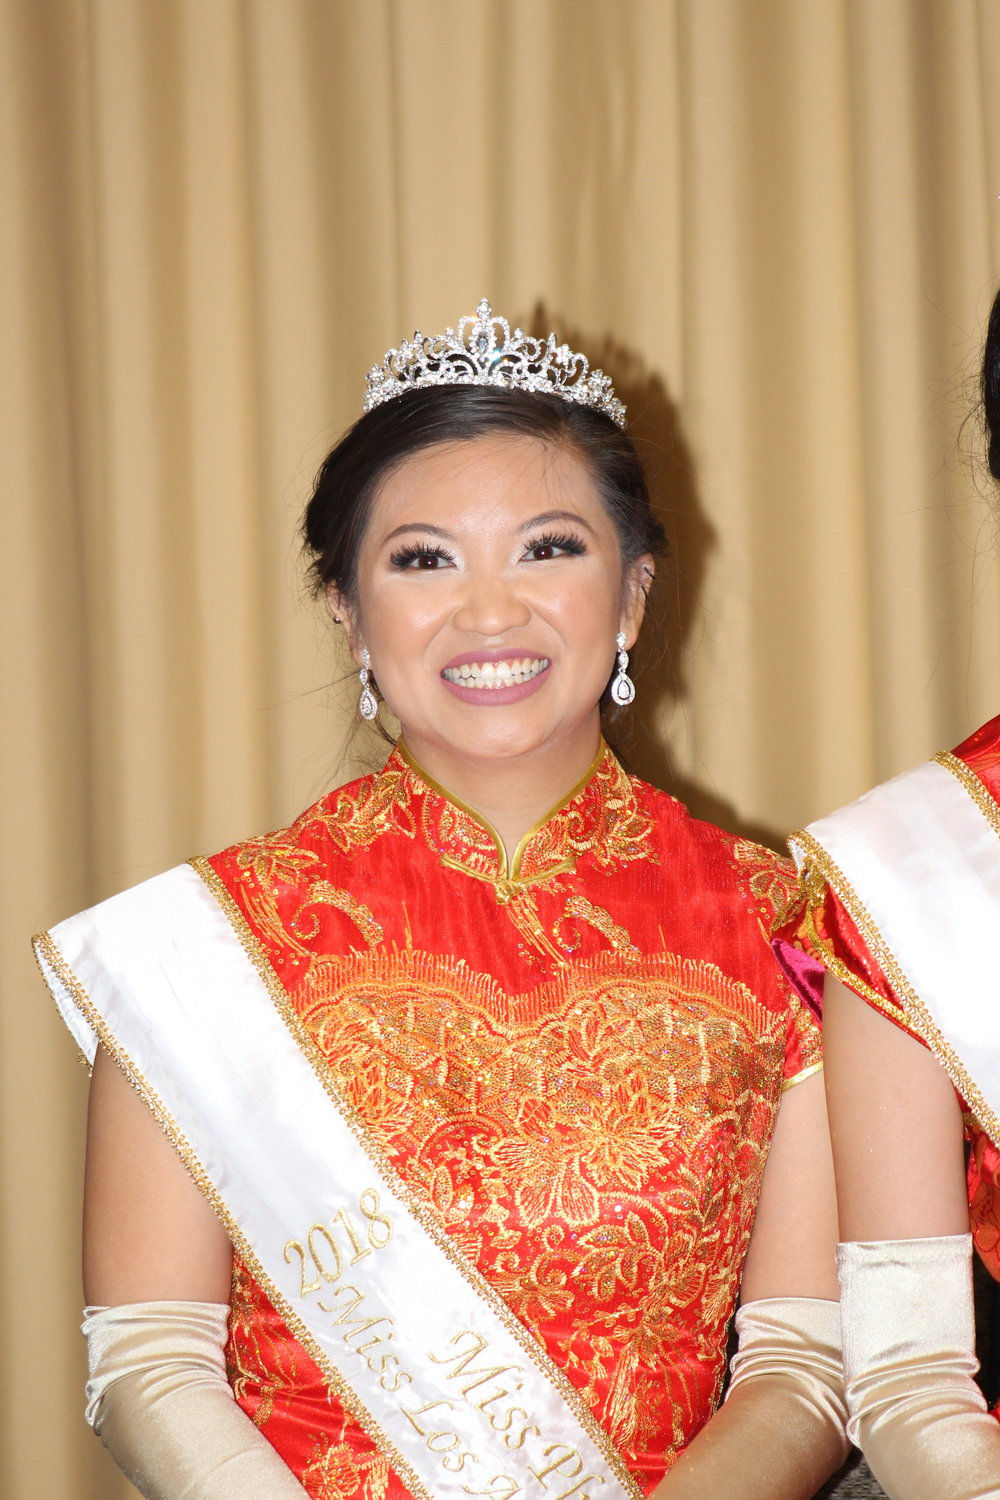 Miss Photogenic & Miss Friendship, Sally Yu